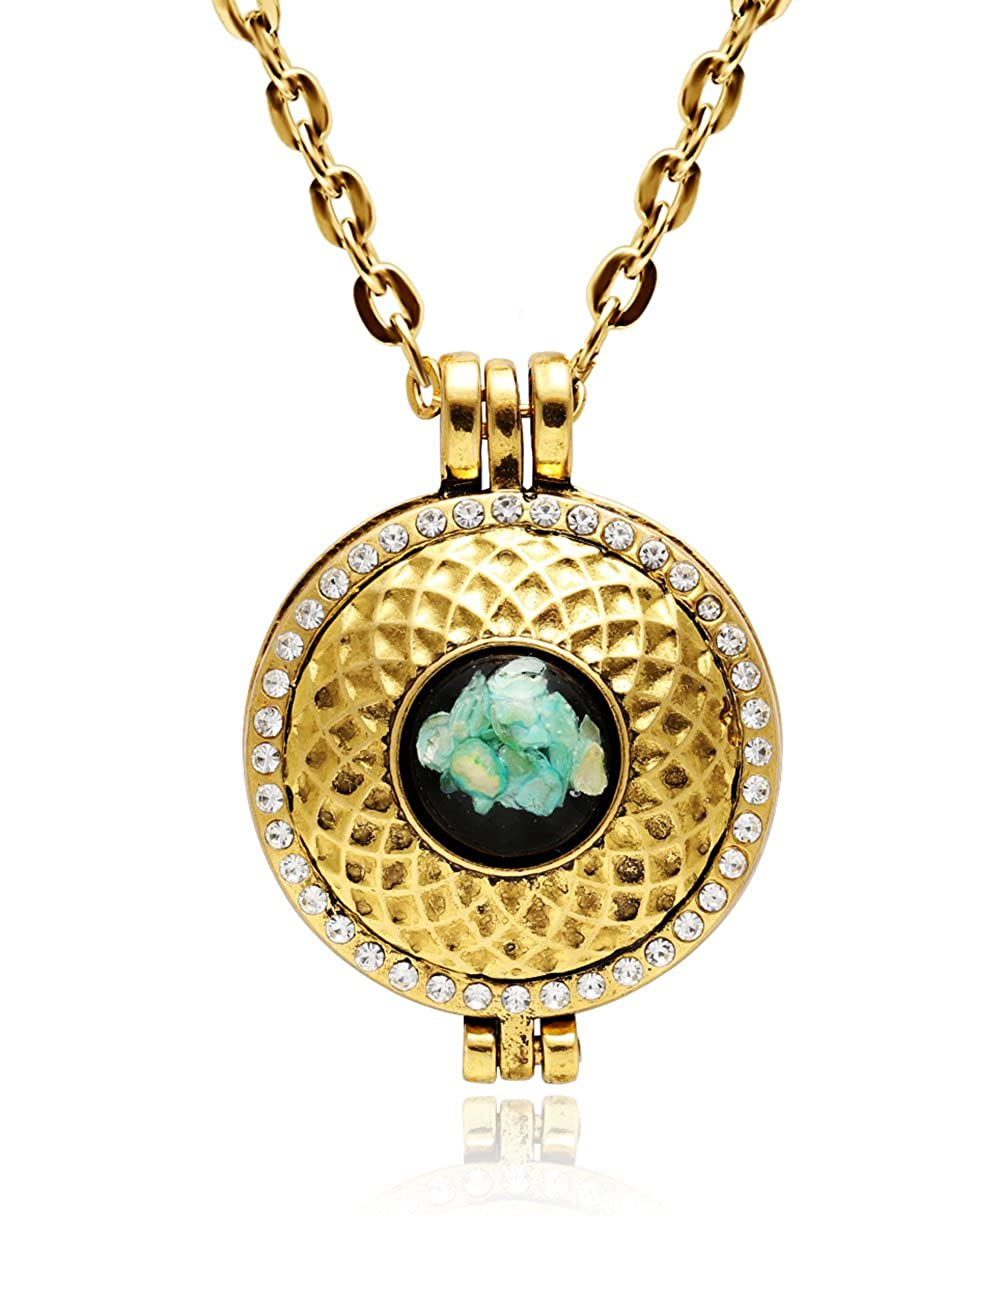 CHUANGYUN Various Gold Geometric Figure Resin Shell Locket Essential Oil Aromatherapy Diffuser Necklace